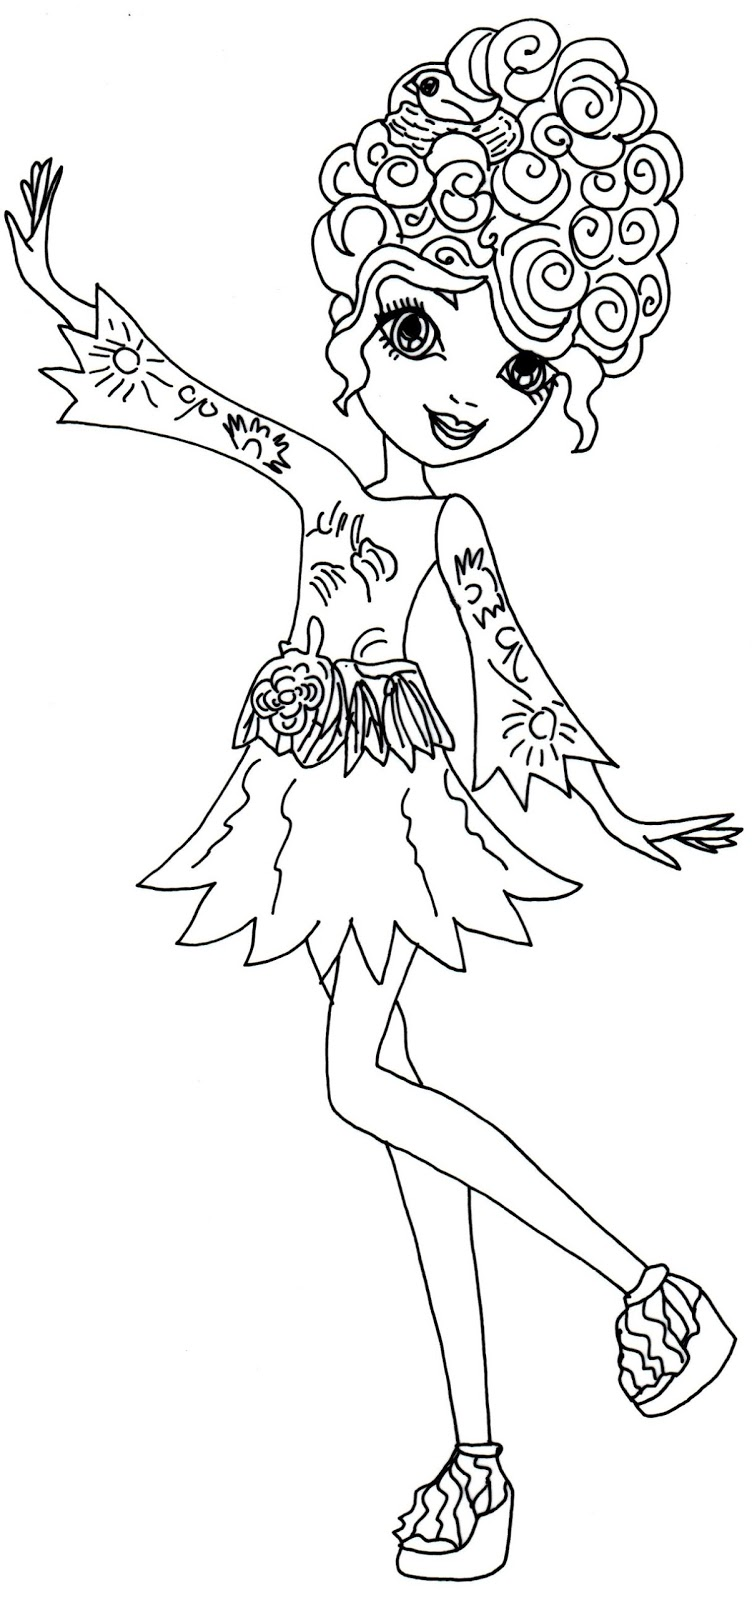 hd wallpapers ever after high dragon games coloring pages wds ever after high names ever after